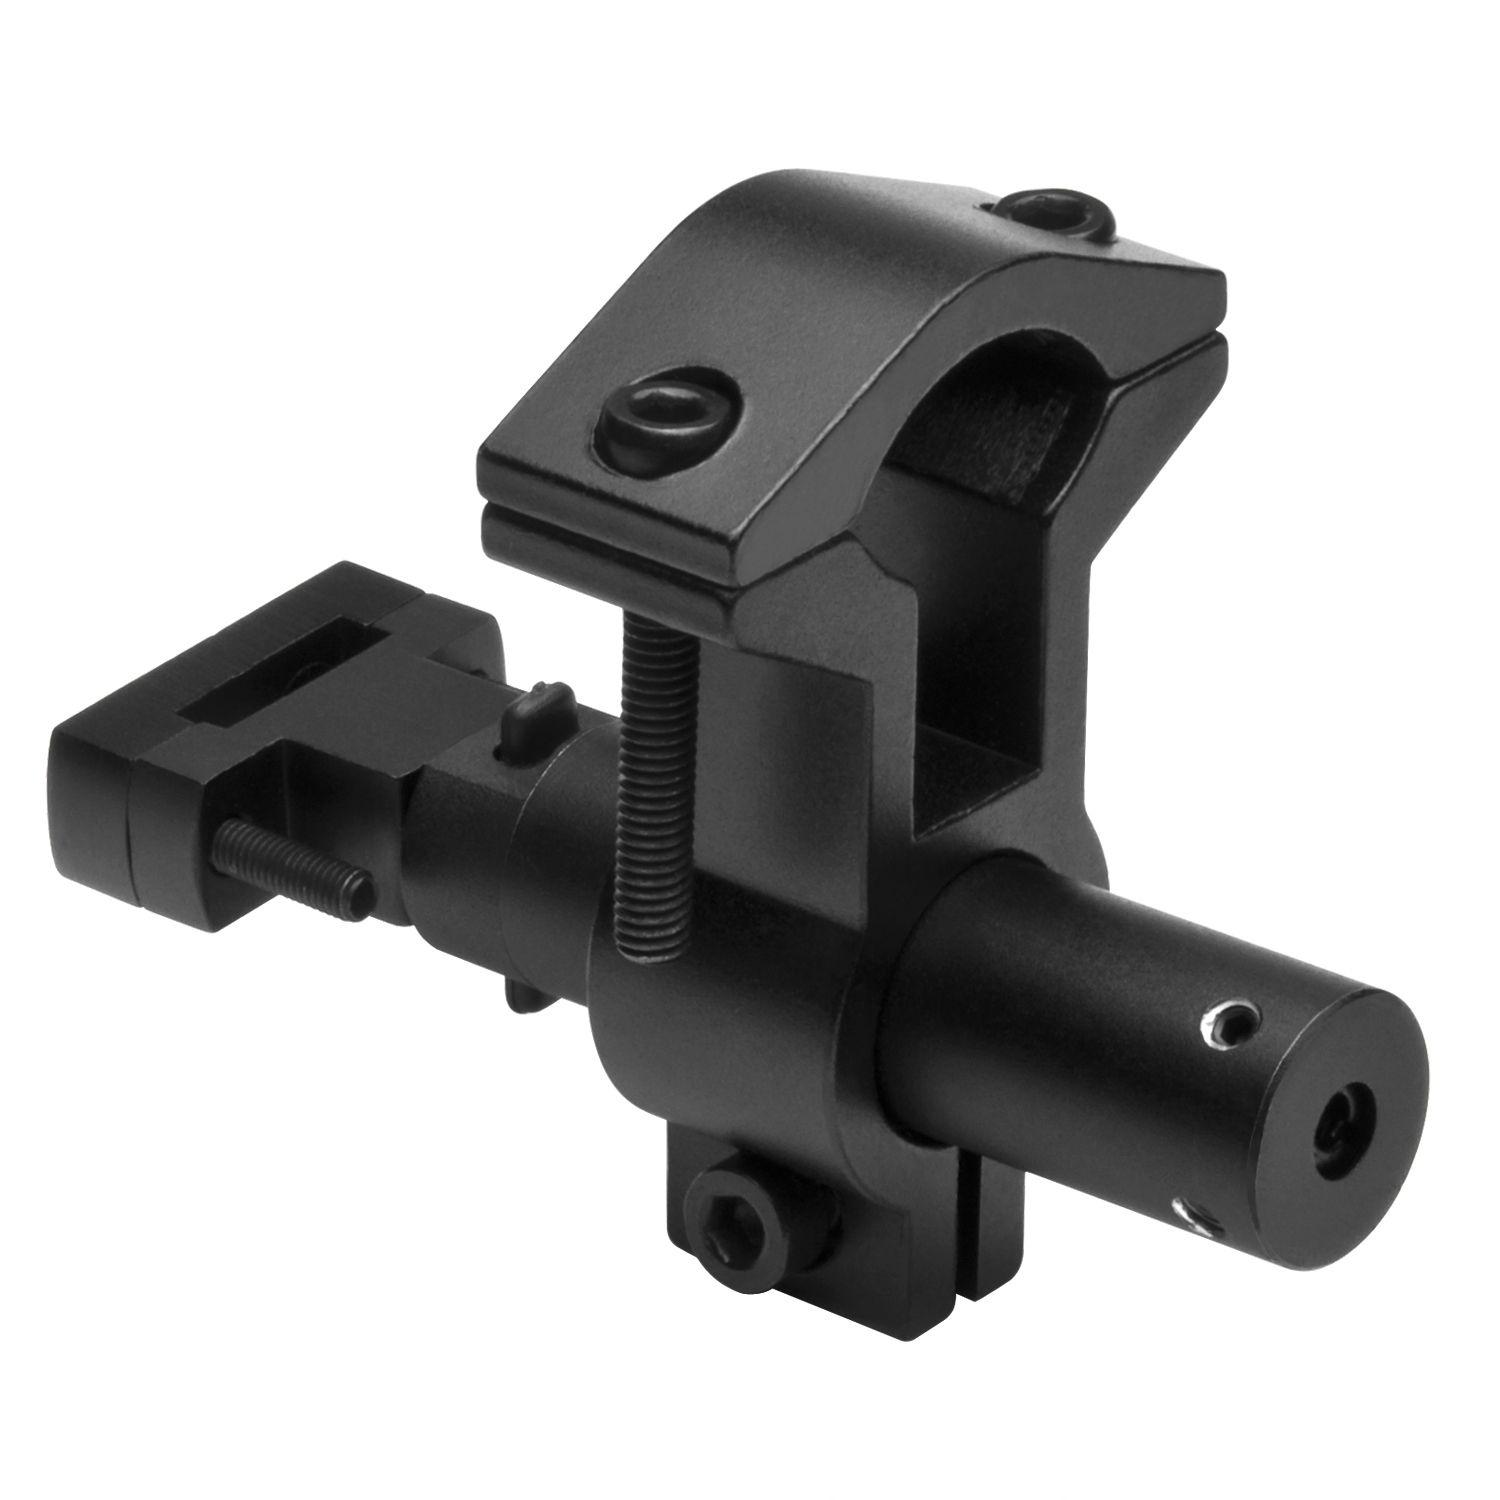 Ncstar Red Laser Sight With Universal Barrel And Trigger Guard Mount